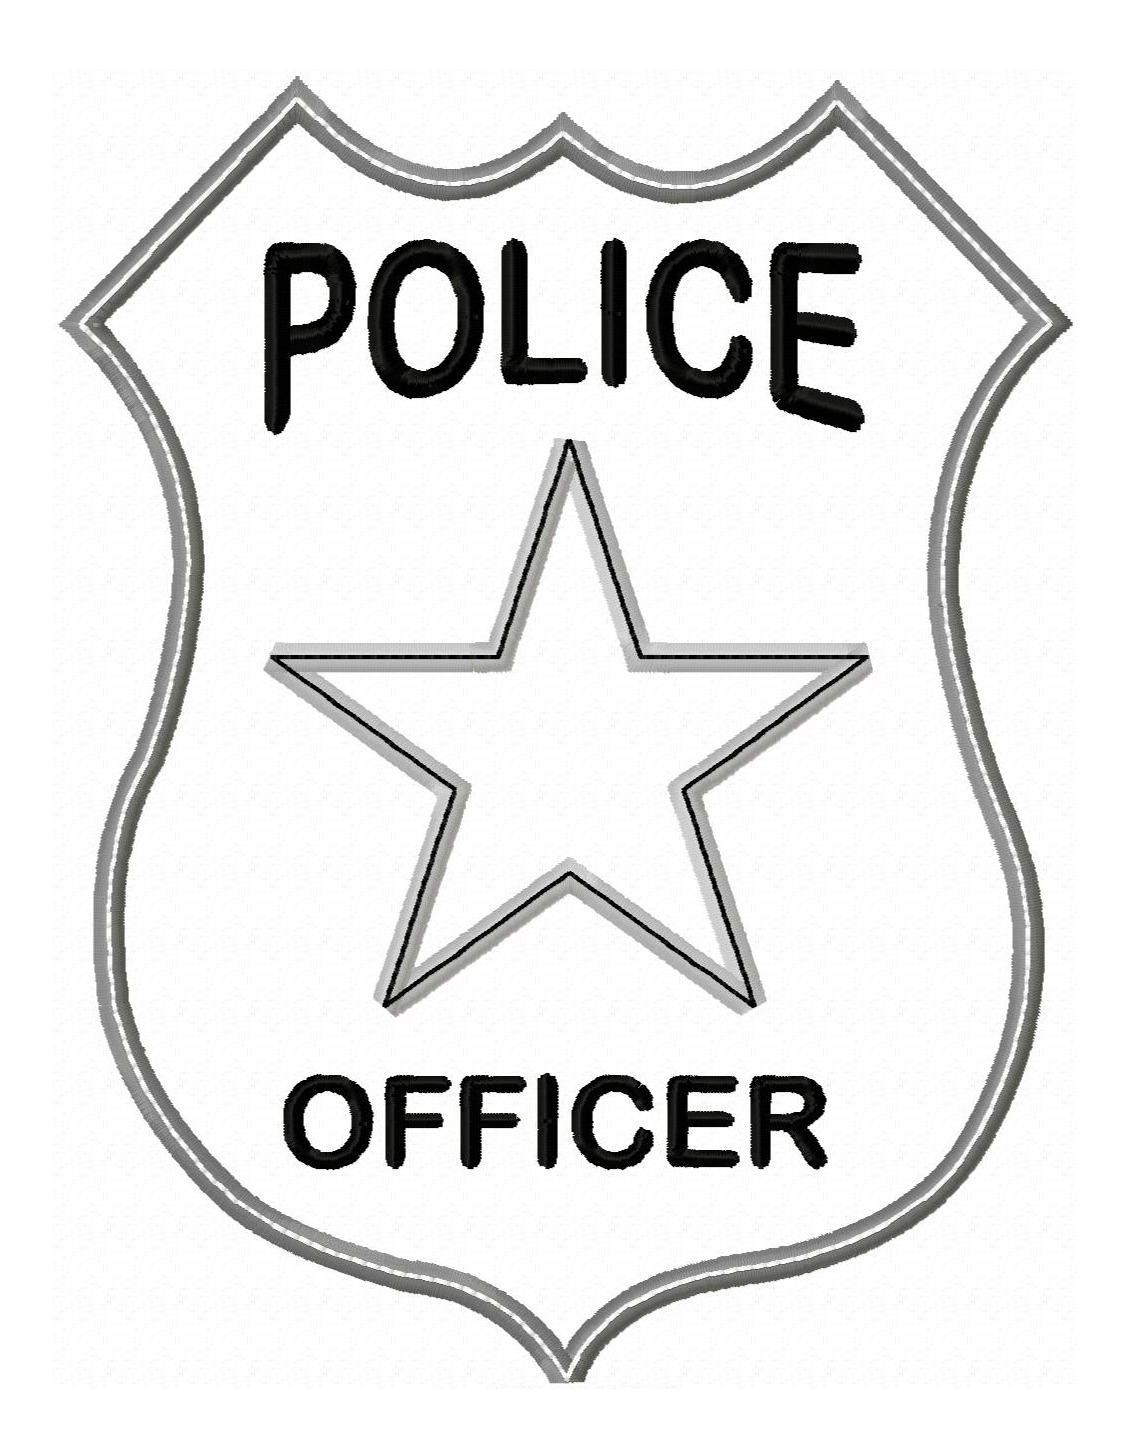 Police Officer Badge Applique